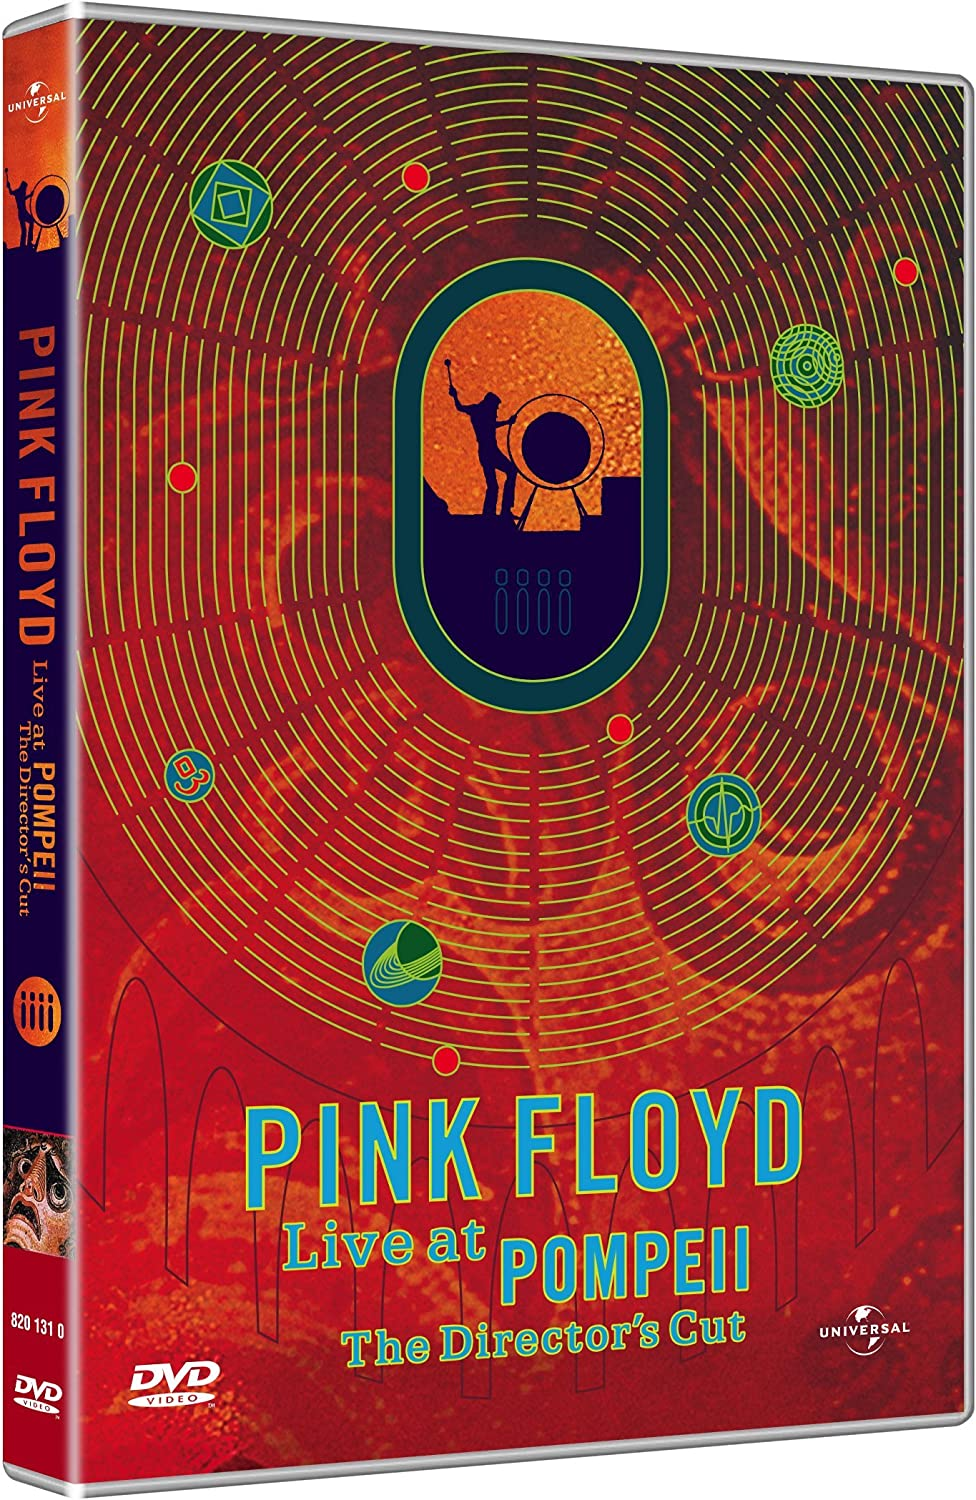 Pink Floyd Live At Pompeii The Director S Cut Dvd Italian Import Amazon Ca Music